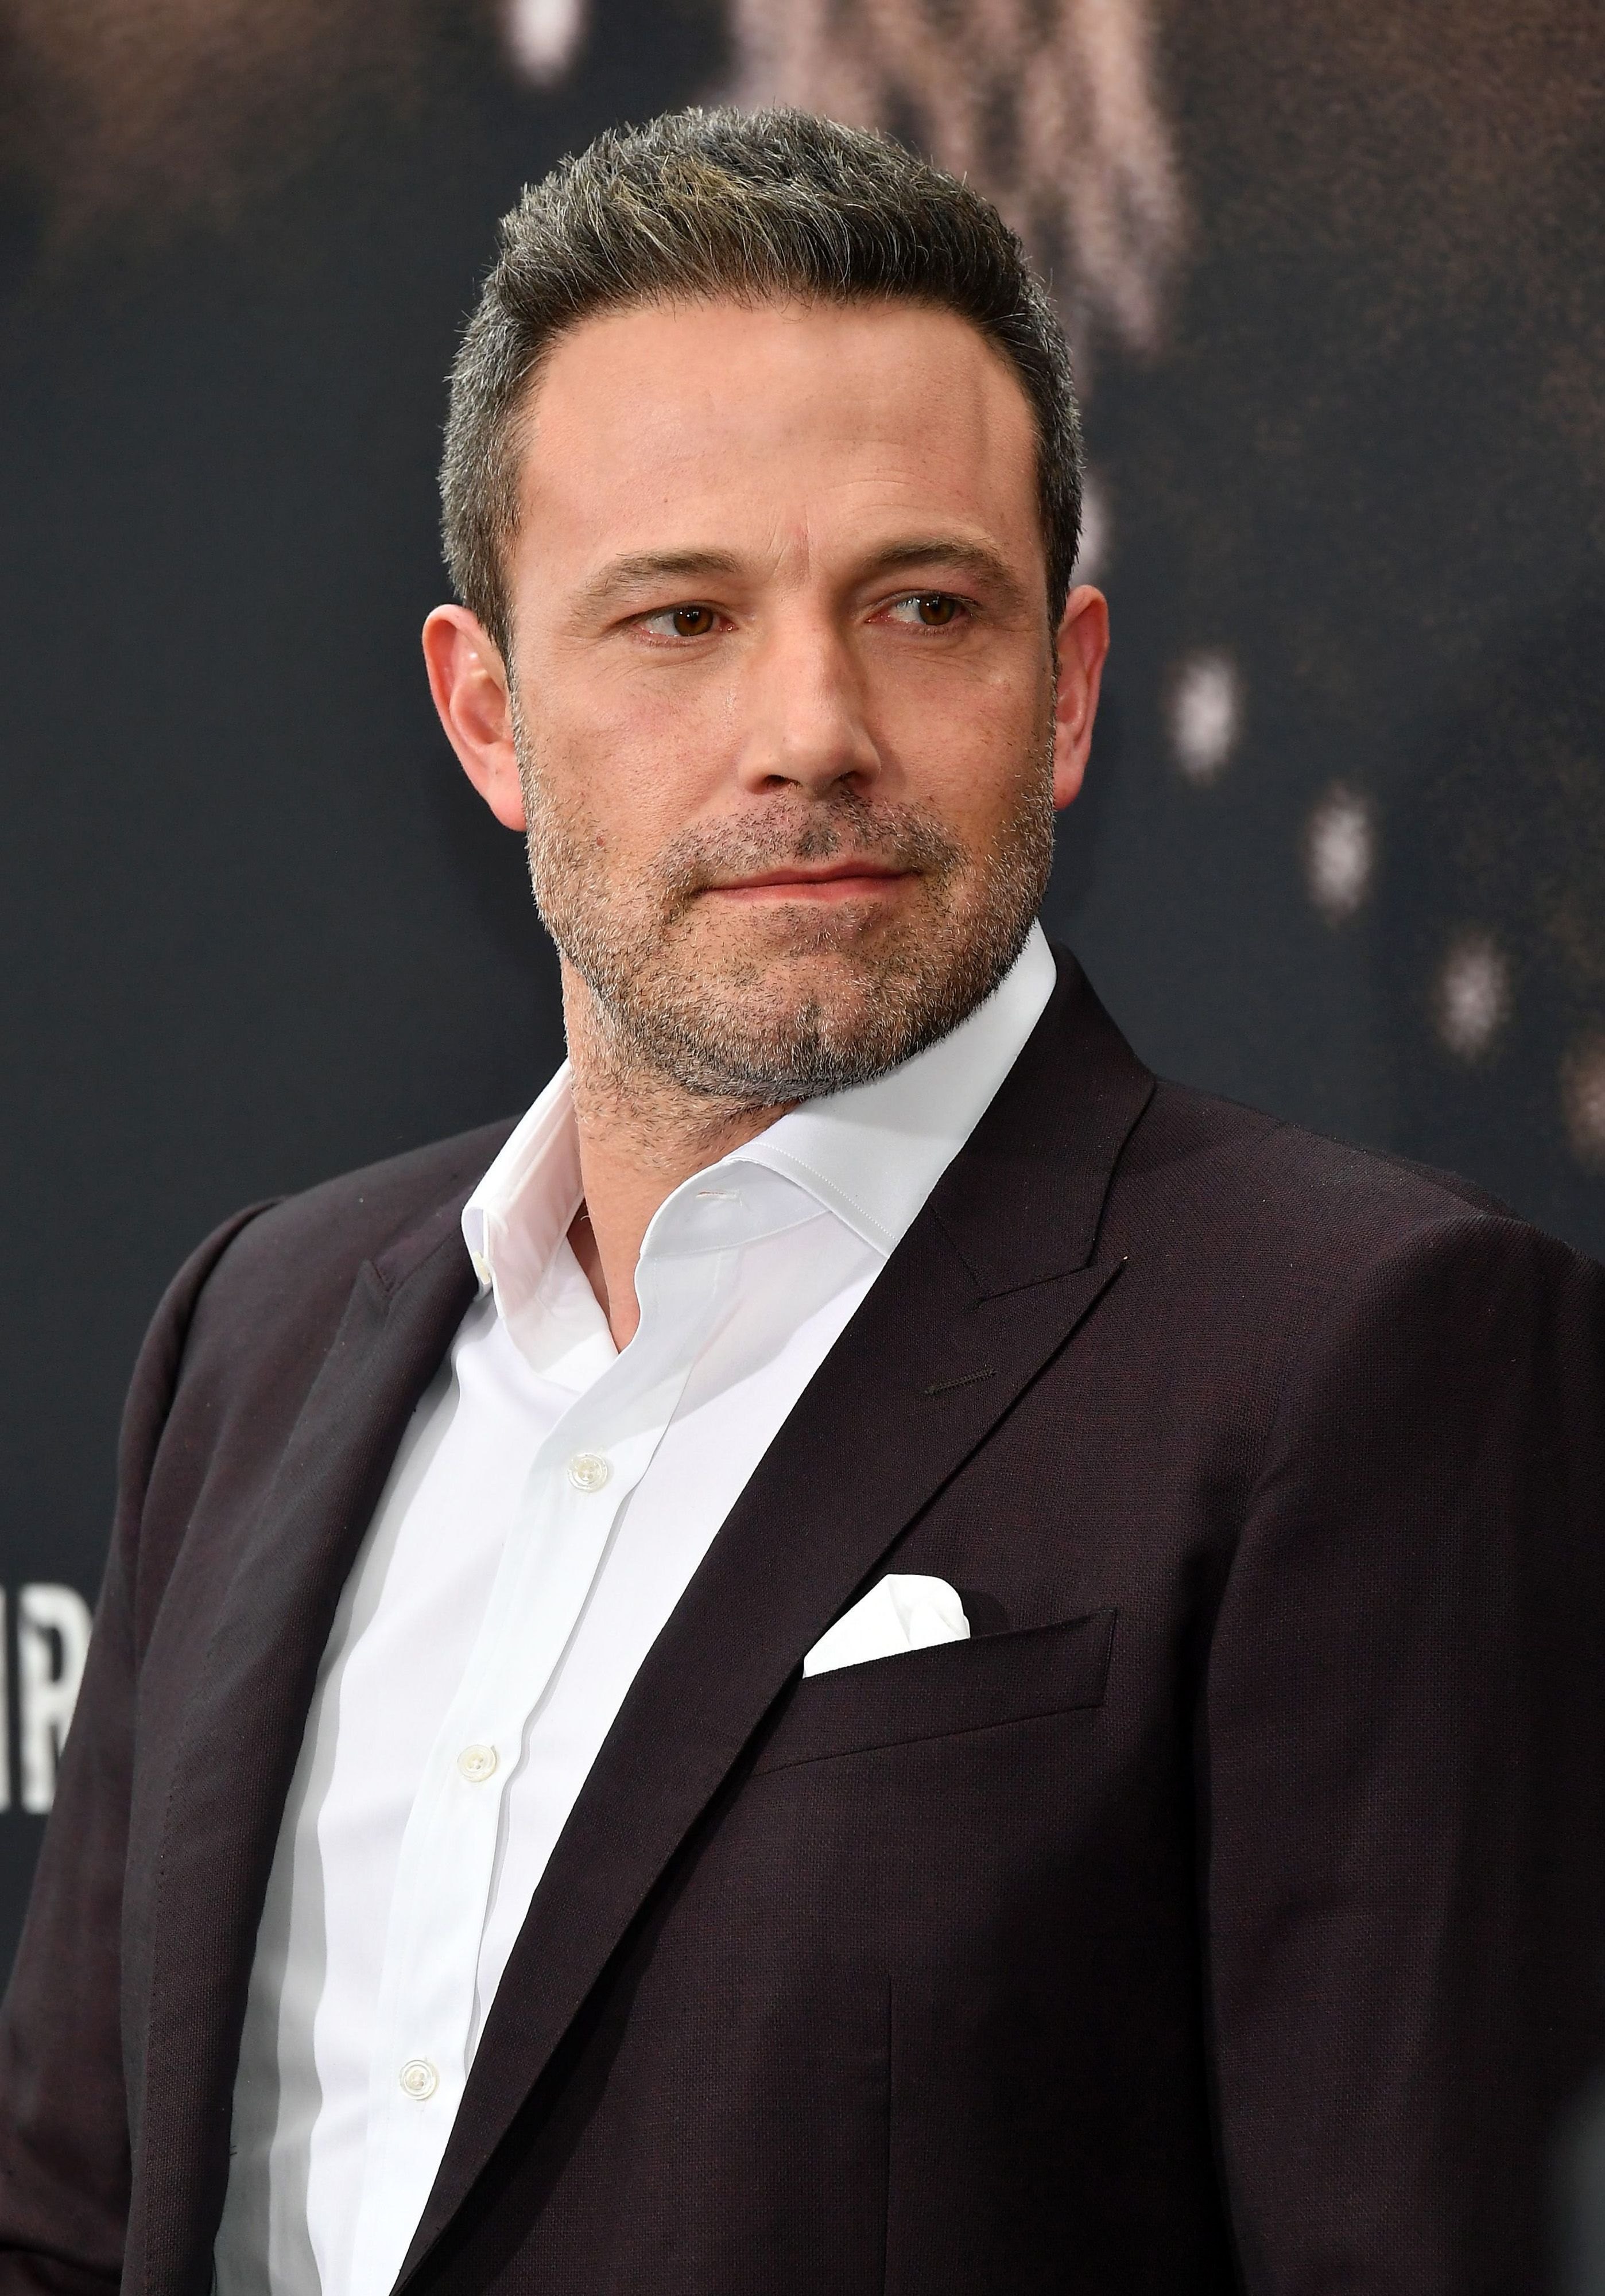 Ben Affleck poses on the red carpet looking off to the left